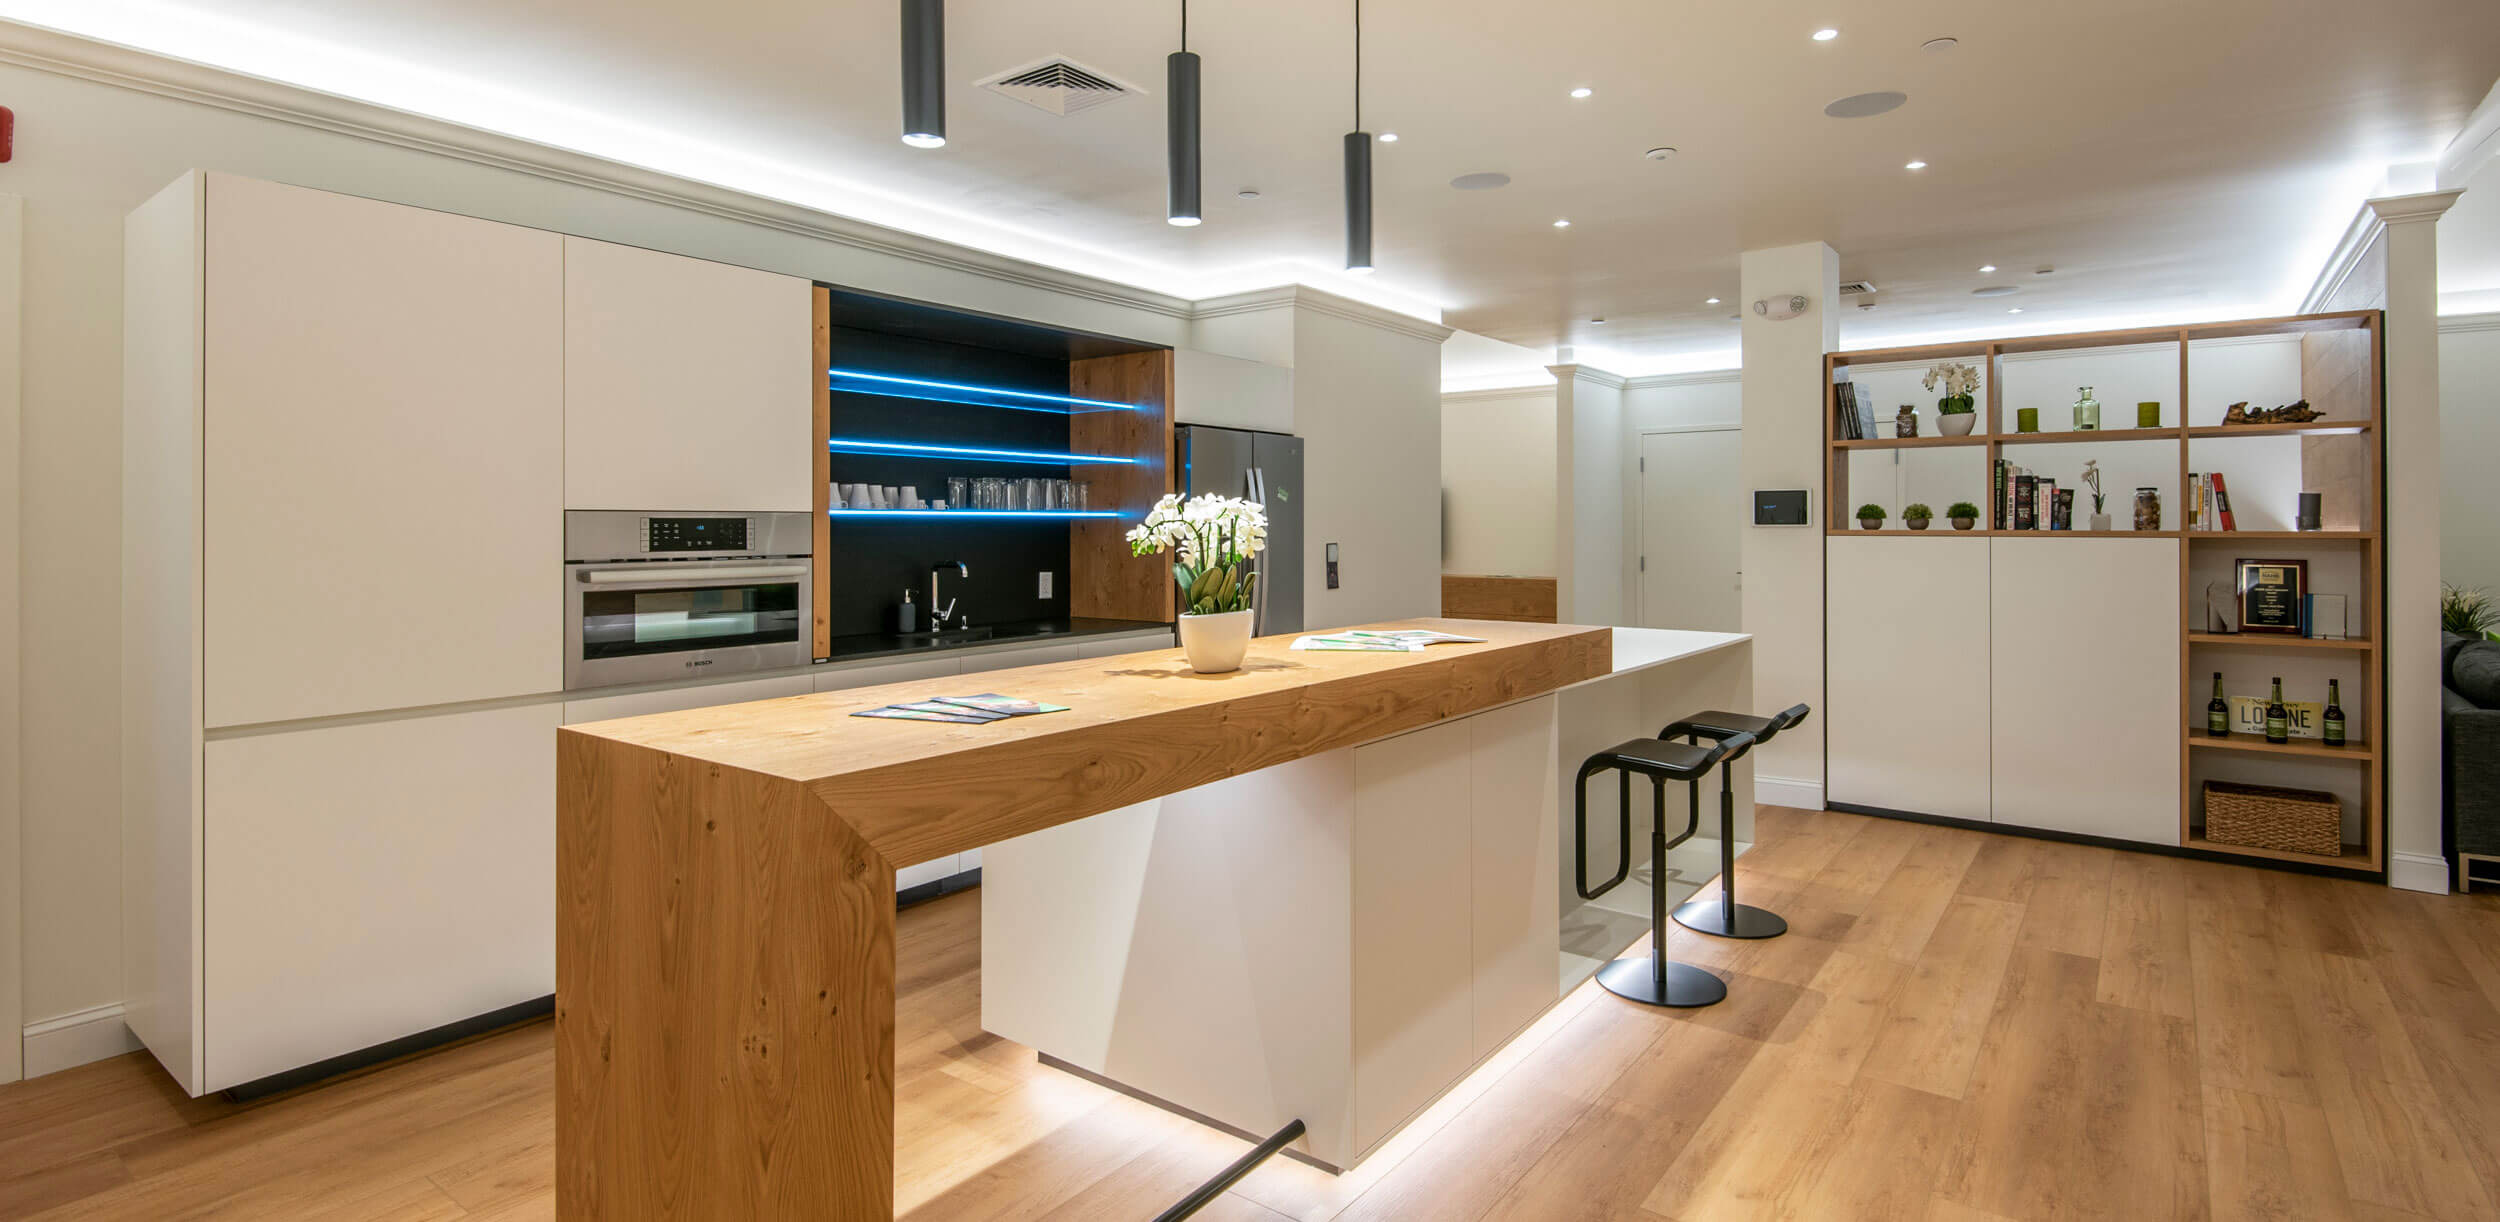 Loxone Experience Center kitchen with bright LED lighting